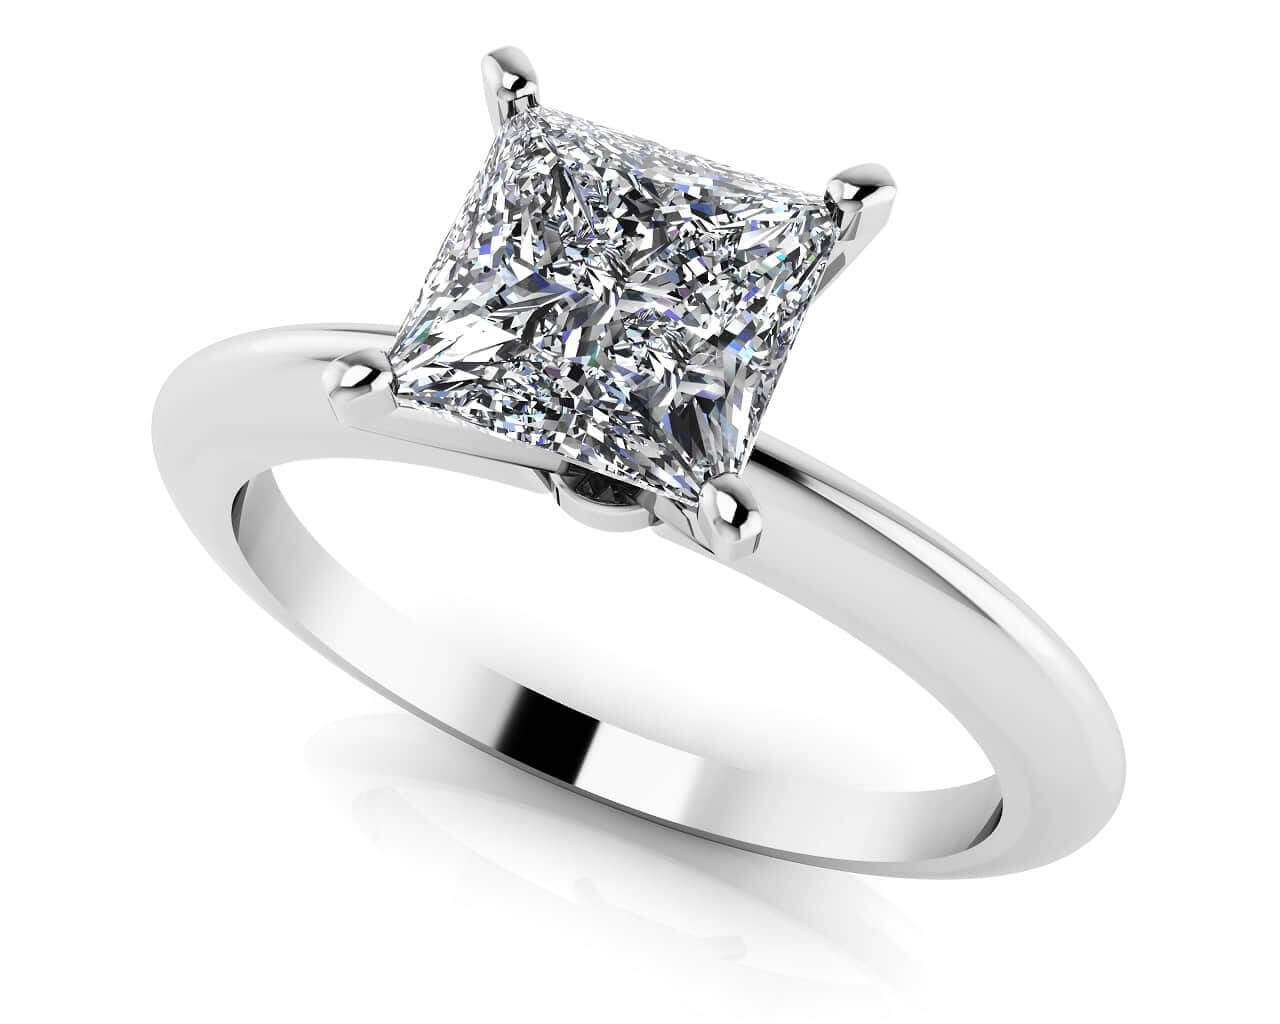 Perfect Princess Cut Diamond Solitaire Engagement Ring 1/2 Carat Total Weight